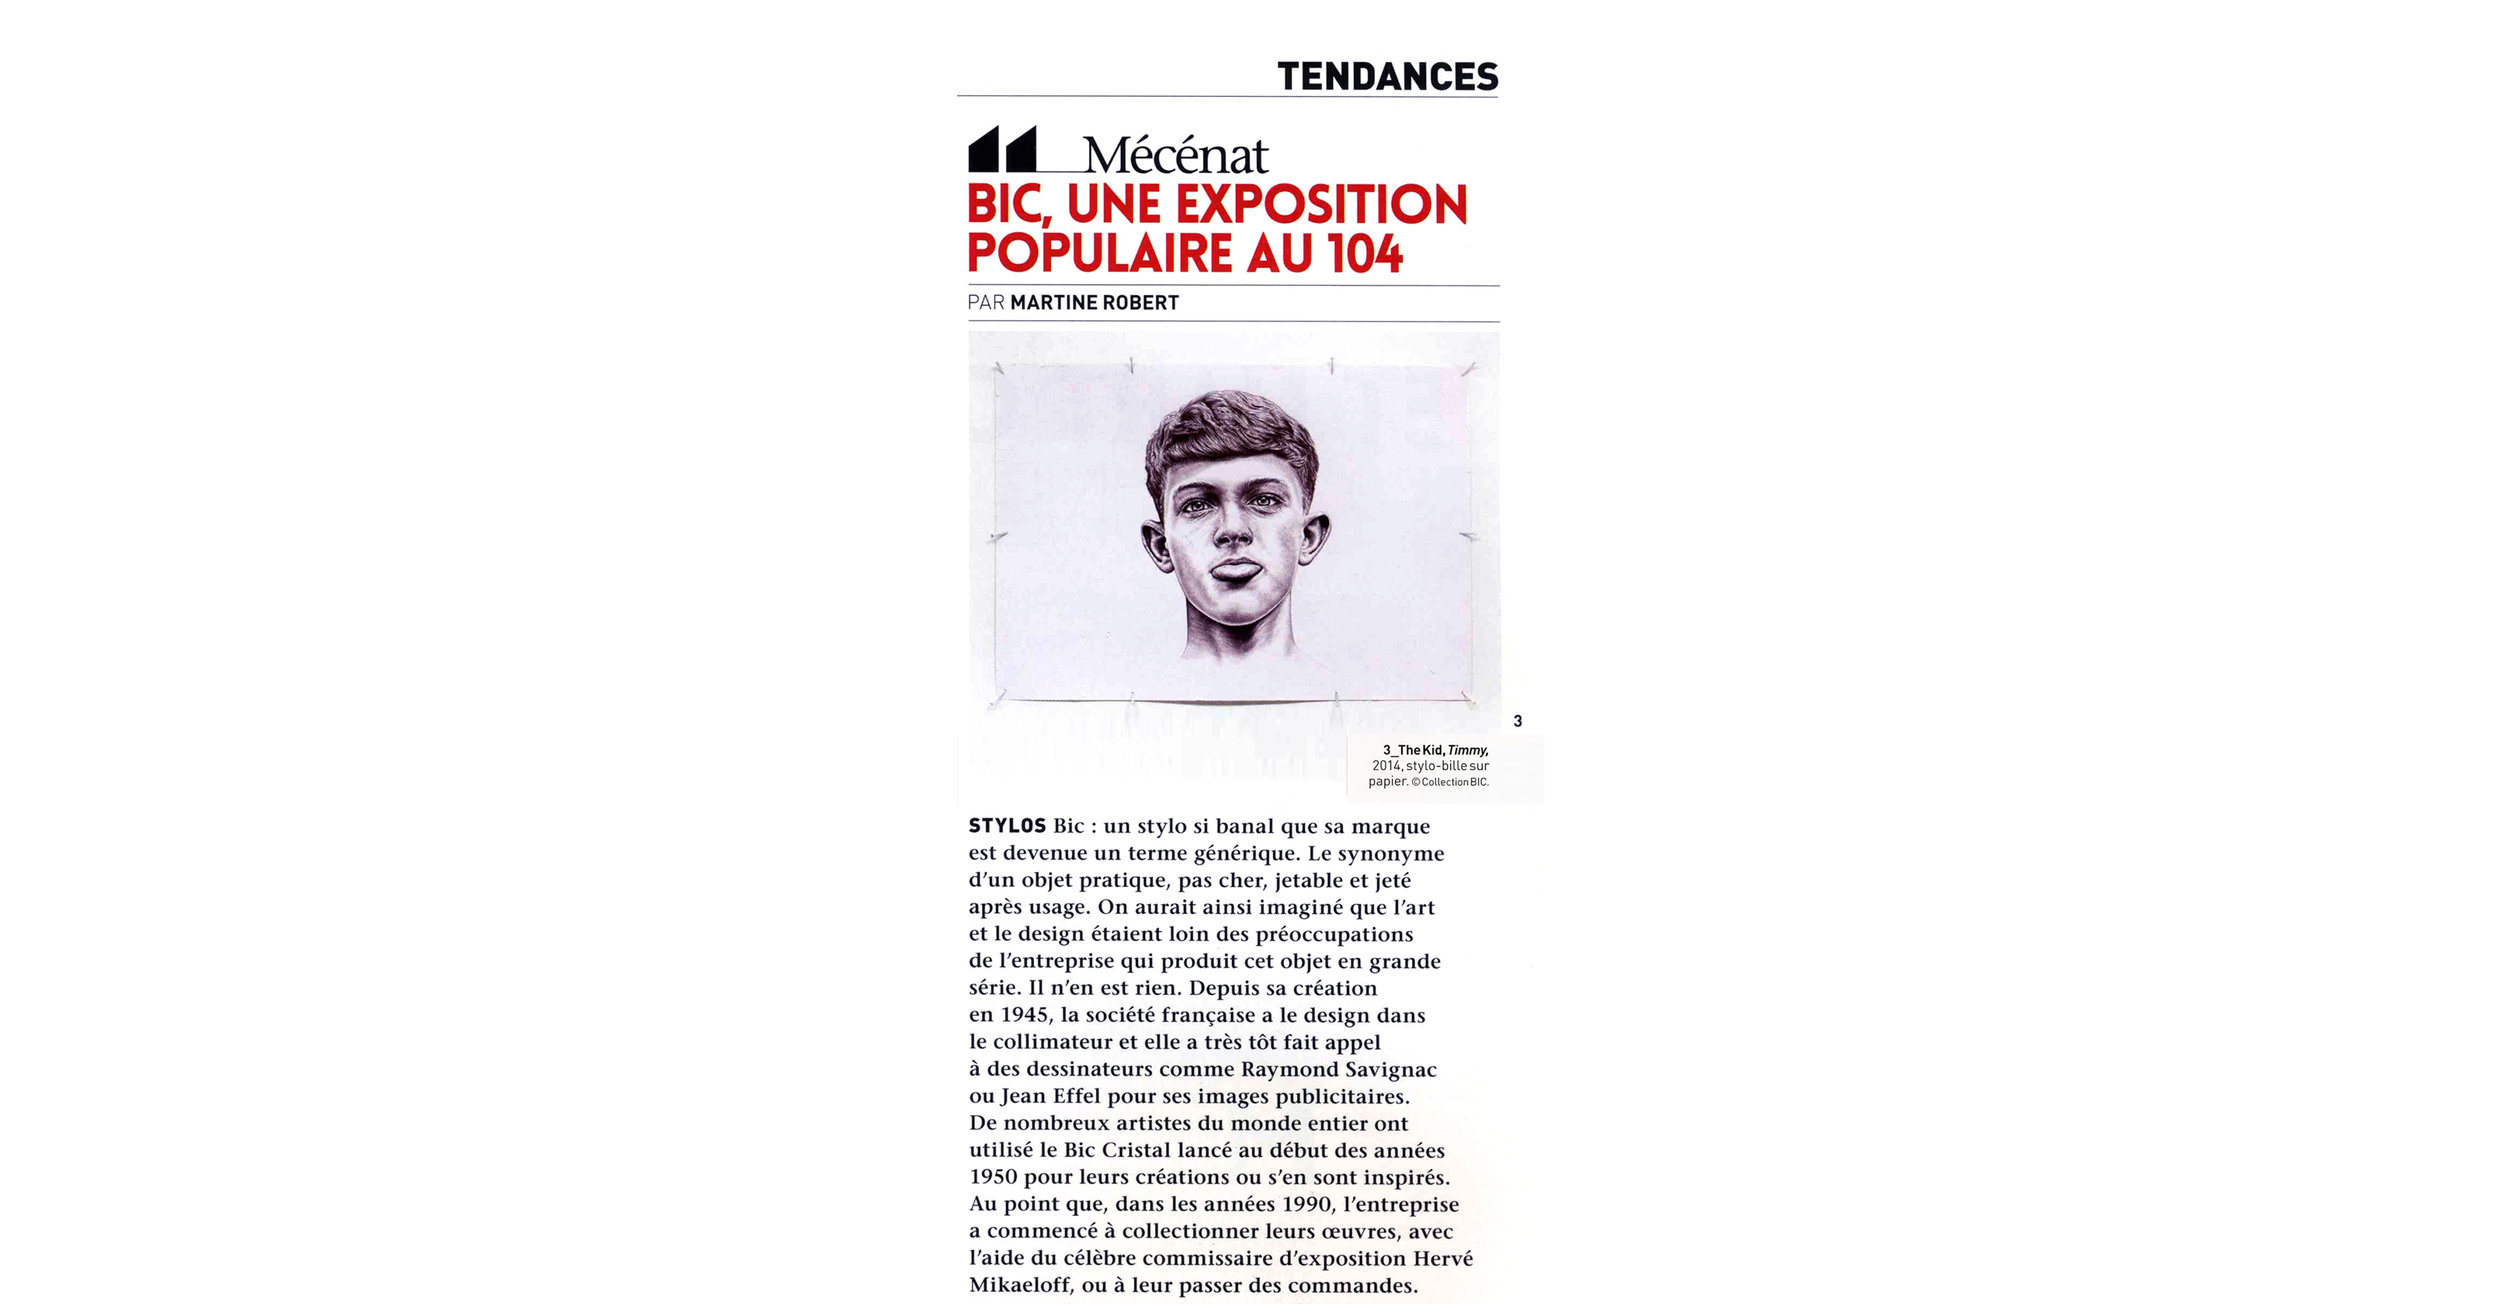 THE KID in L OEIL Magazine - May 2018 Print Issue - France - Pages 112 and 113 - Page 113 - Article - Zoom in - Web wb copie.jpg